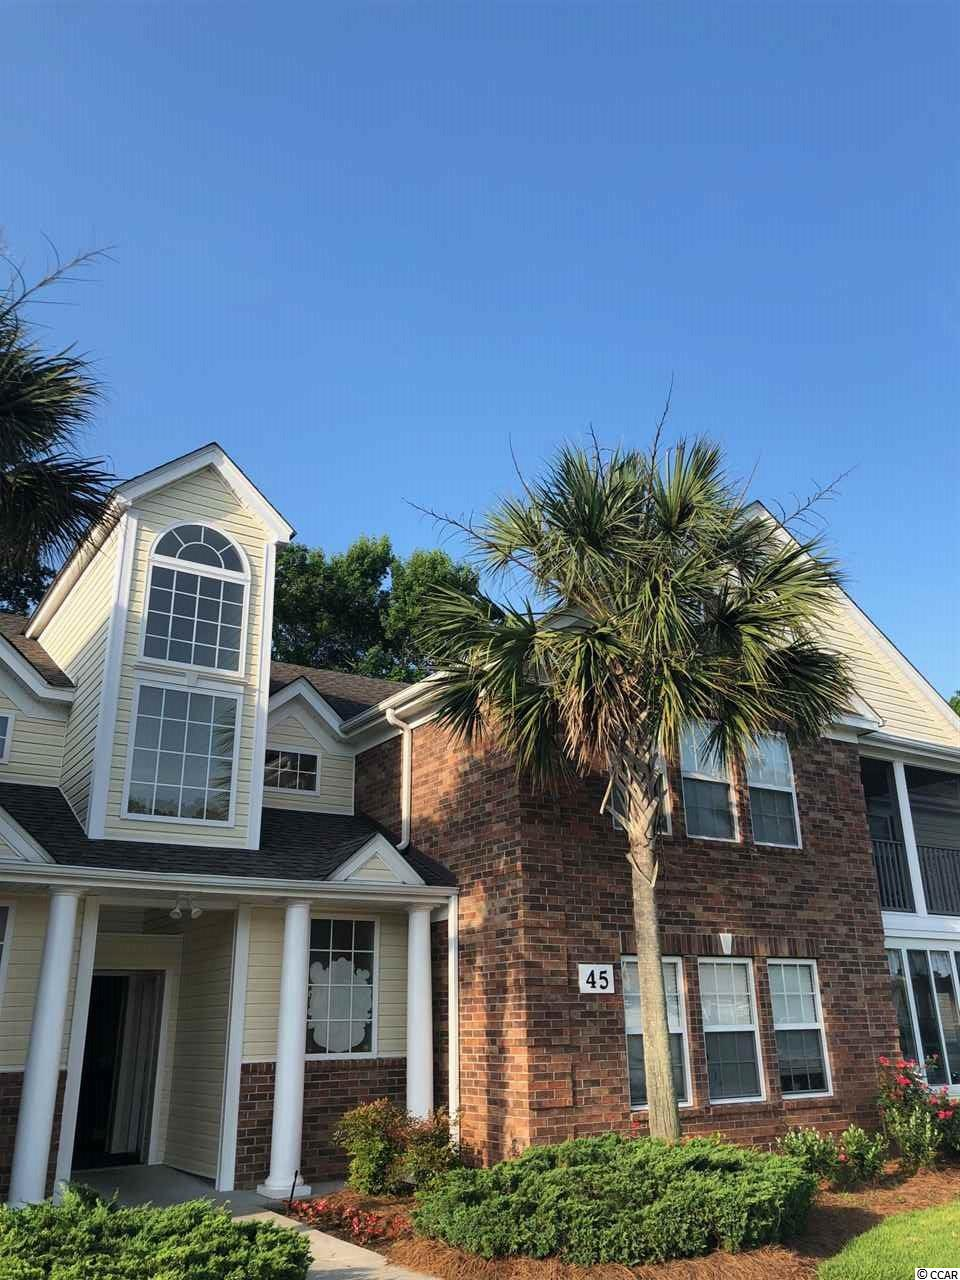 Condo MLS:1824063 STERLING POINTE - MURRELLS INLET  45 Woodhaven Dr. Murrells Inlet SC